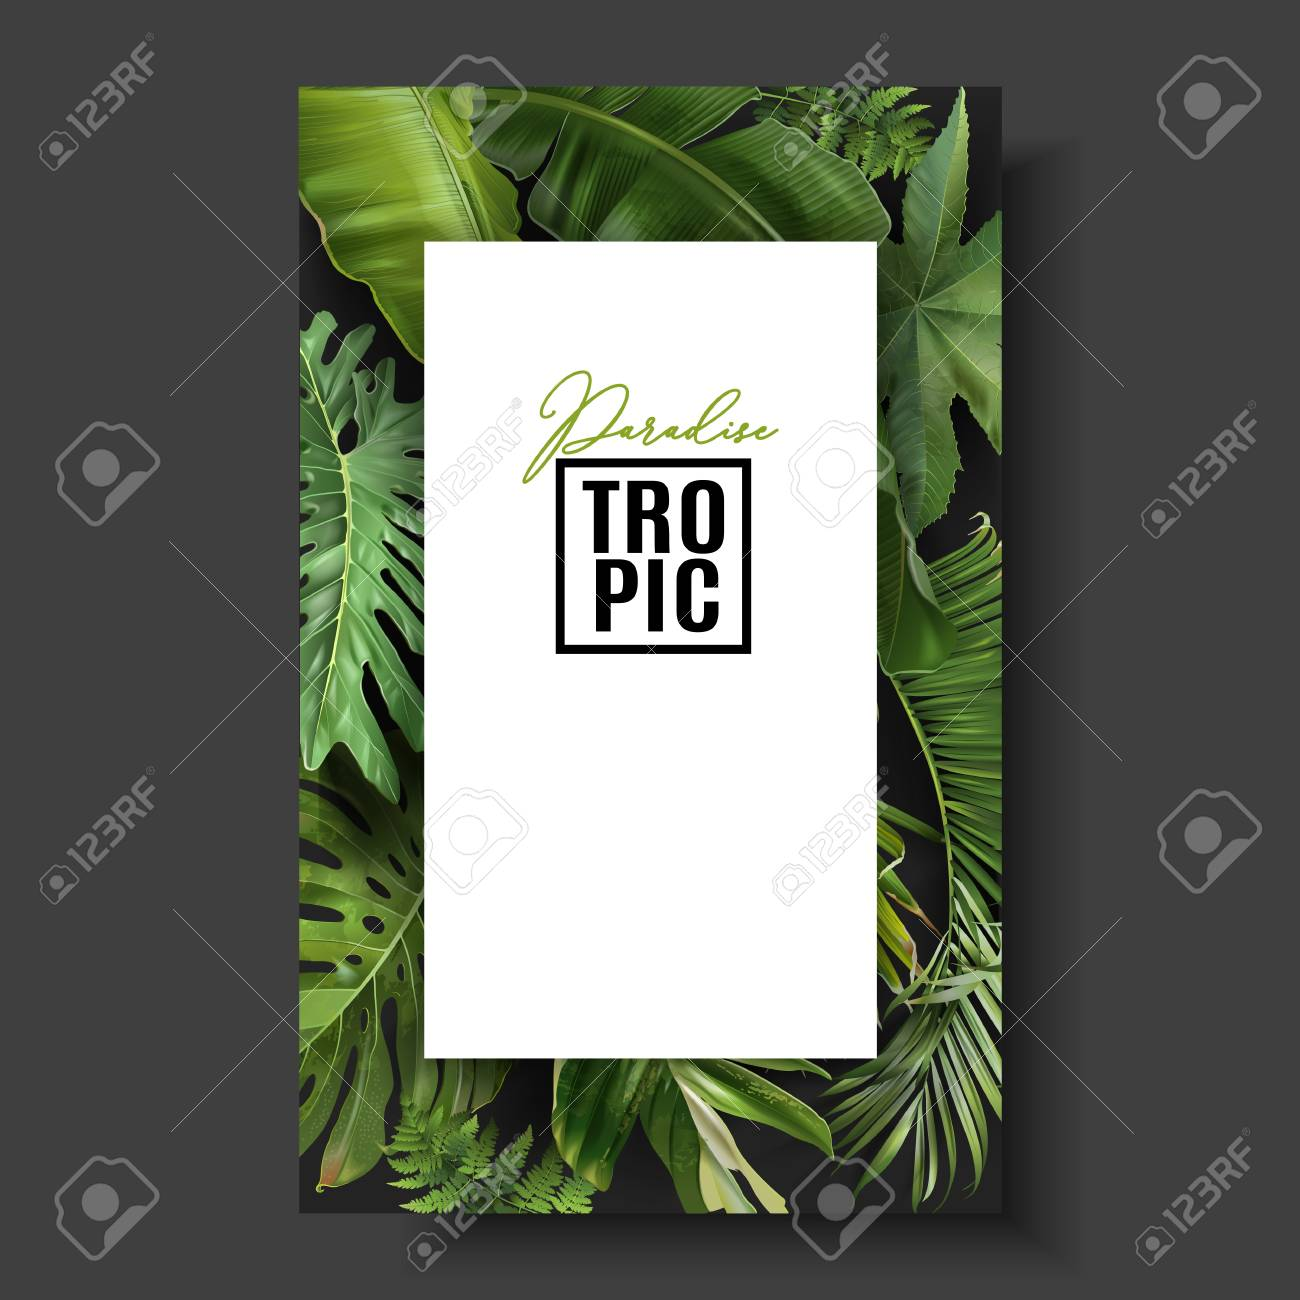 Vector Banner With Green Tropical Leaves On Black Background Royalty Free Cliparts Vectors And Stock Illustration Image 126505324